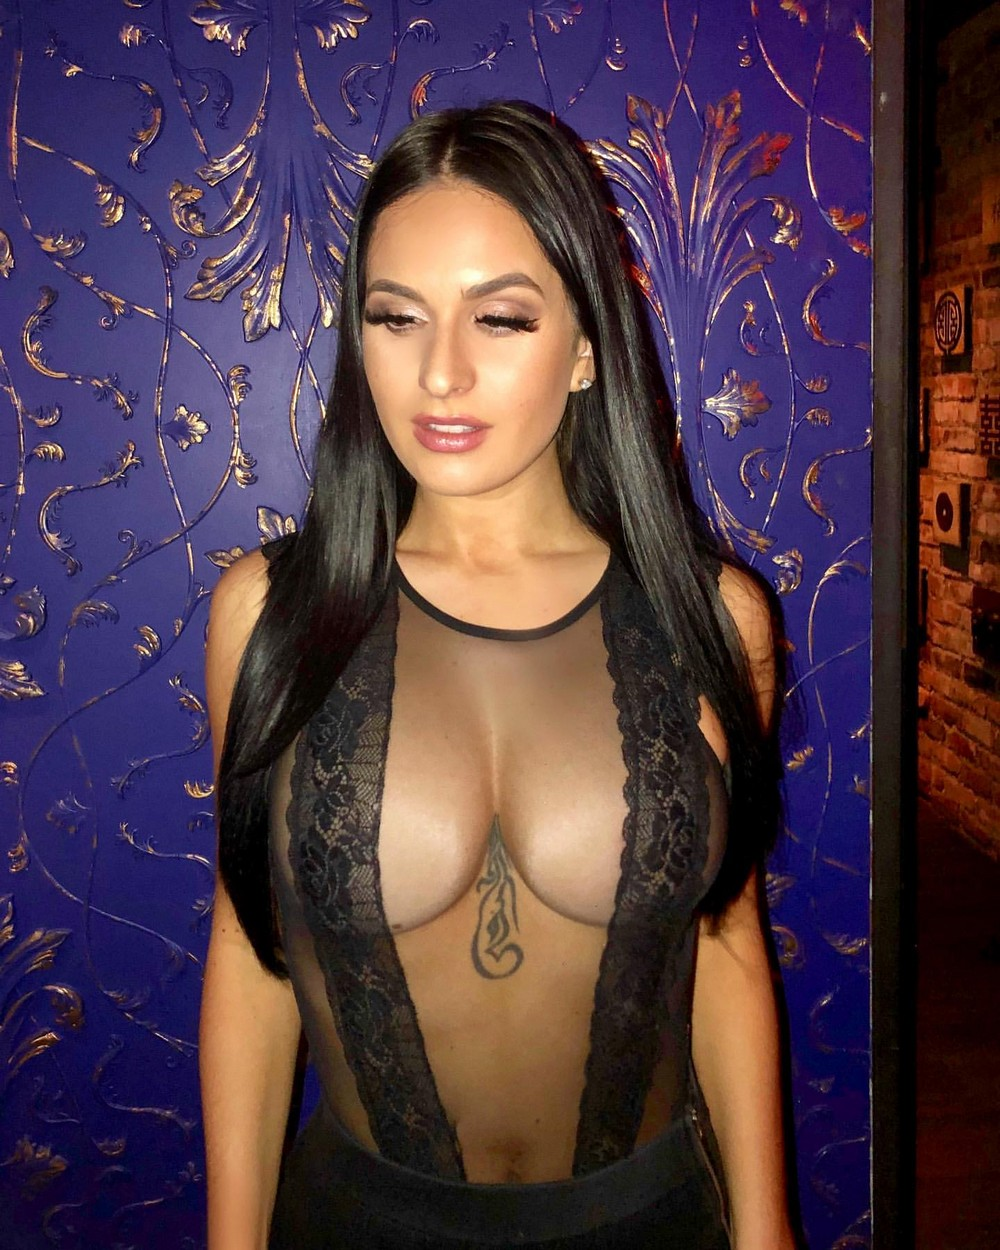 40 Hot Girls Wearing Mesh Clothes